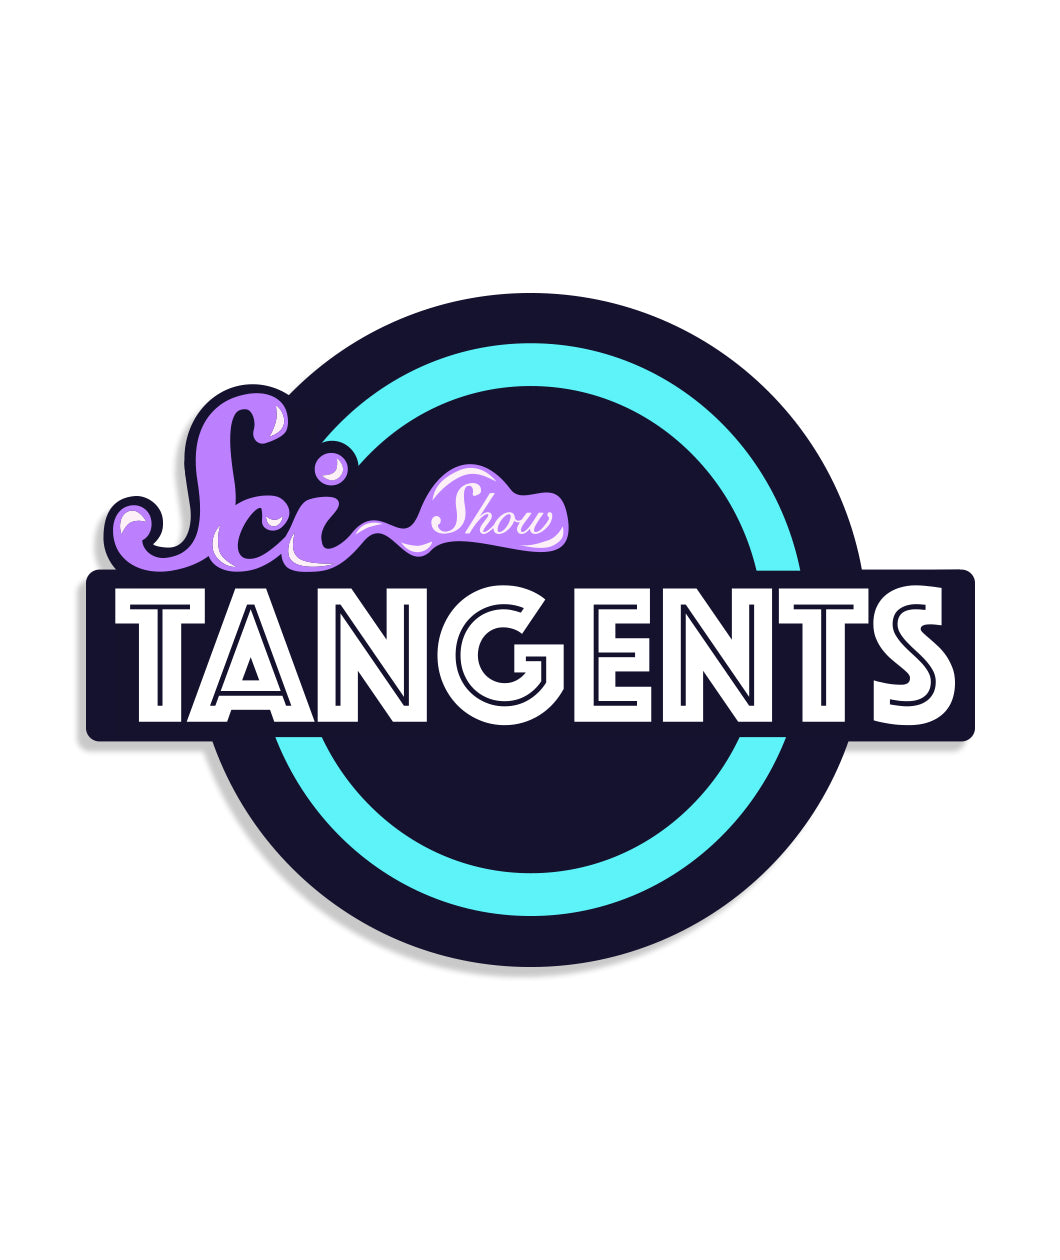 SciShow Tangents Decal